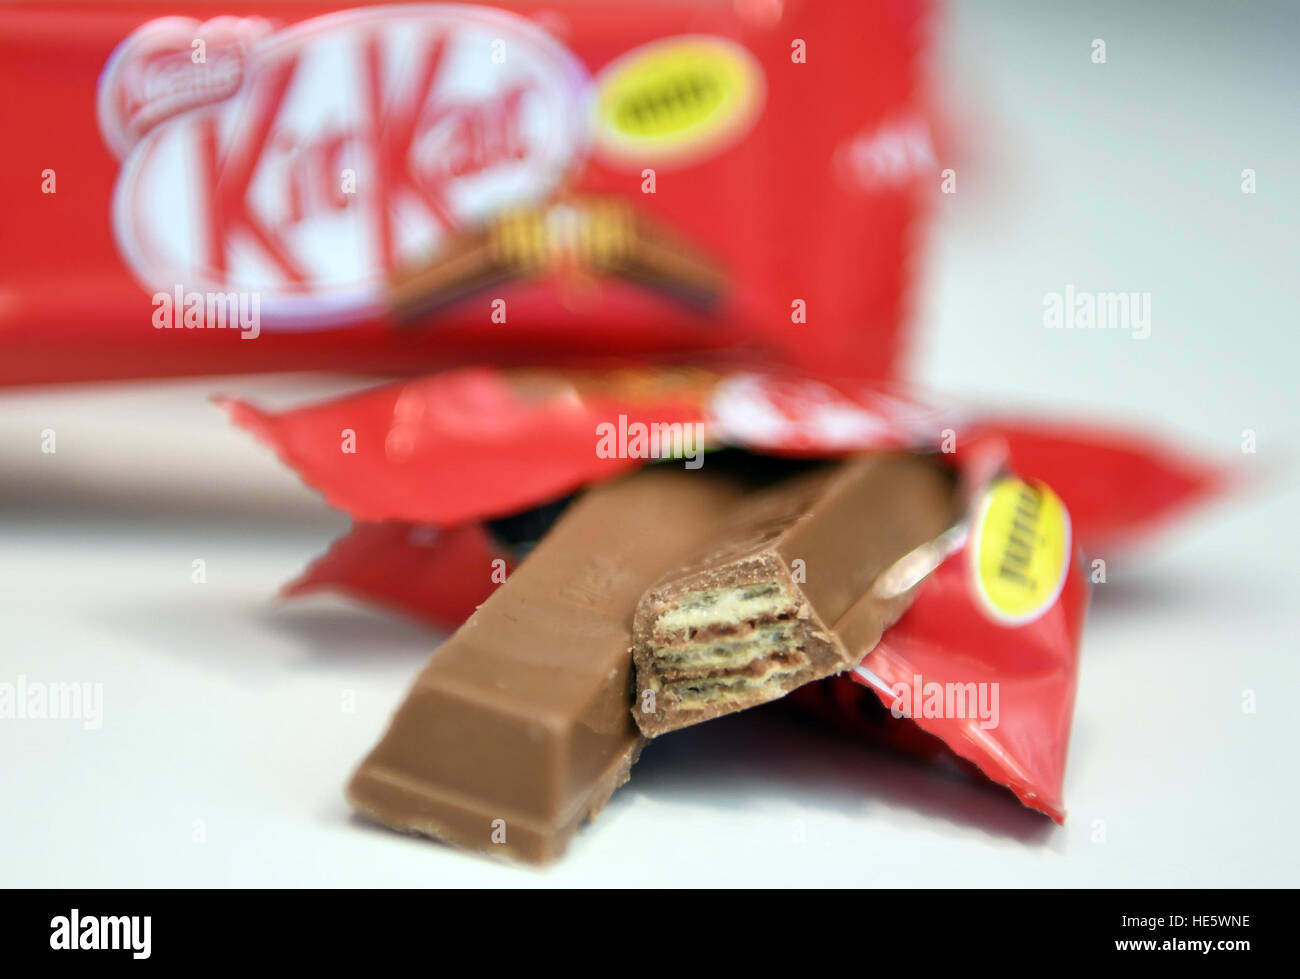 Berlin, Germany. 15th Dec, 2016. ILLUSTRATION: A KitKat chocolate bar on a table in Berlin, Germany, 15 December - Stock Image